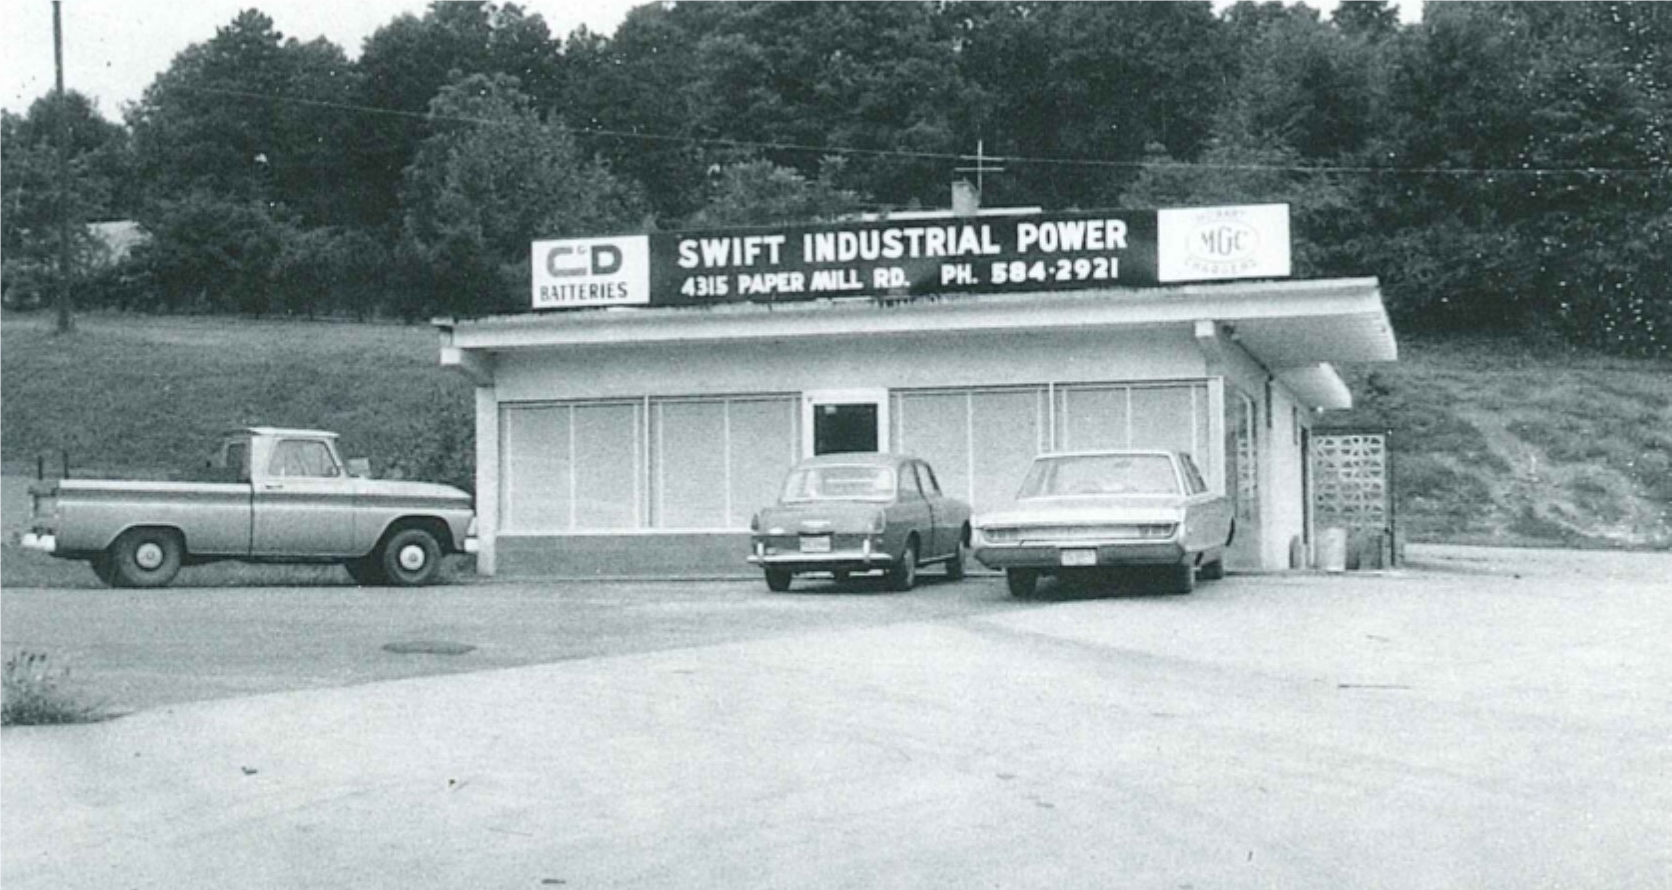 Swift Industrial Power